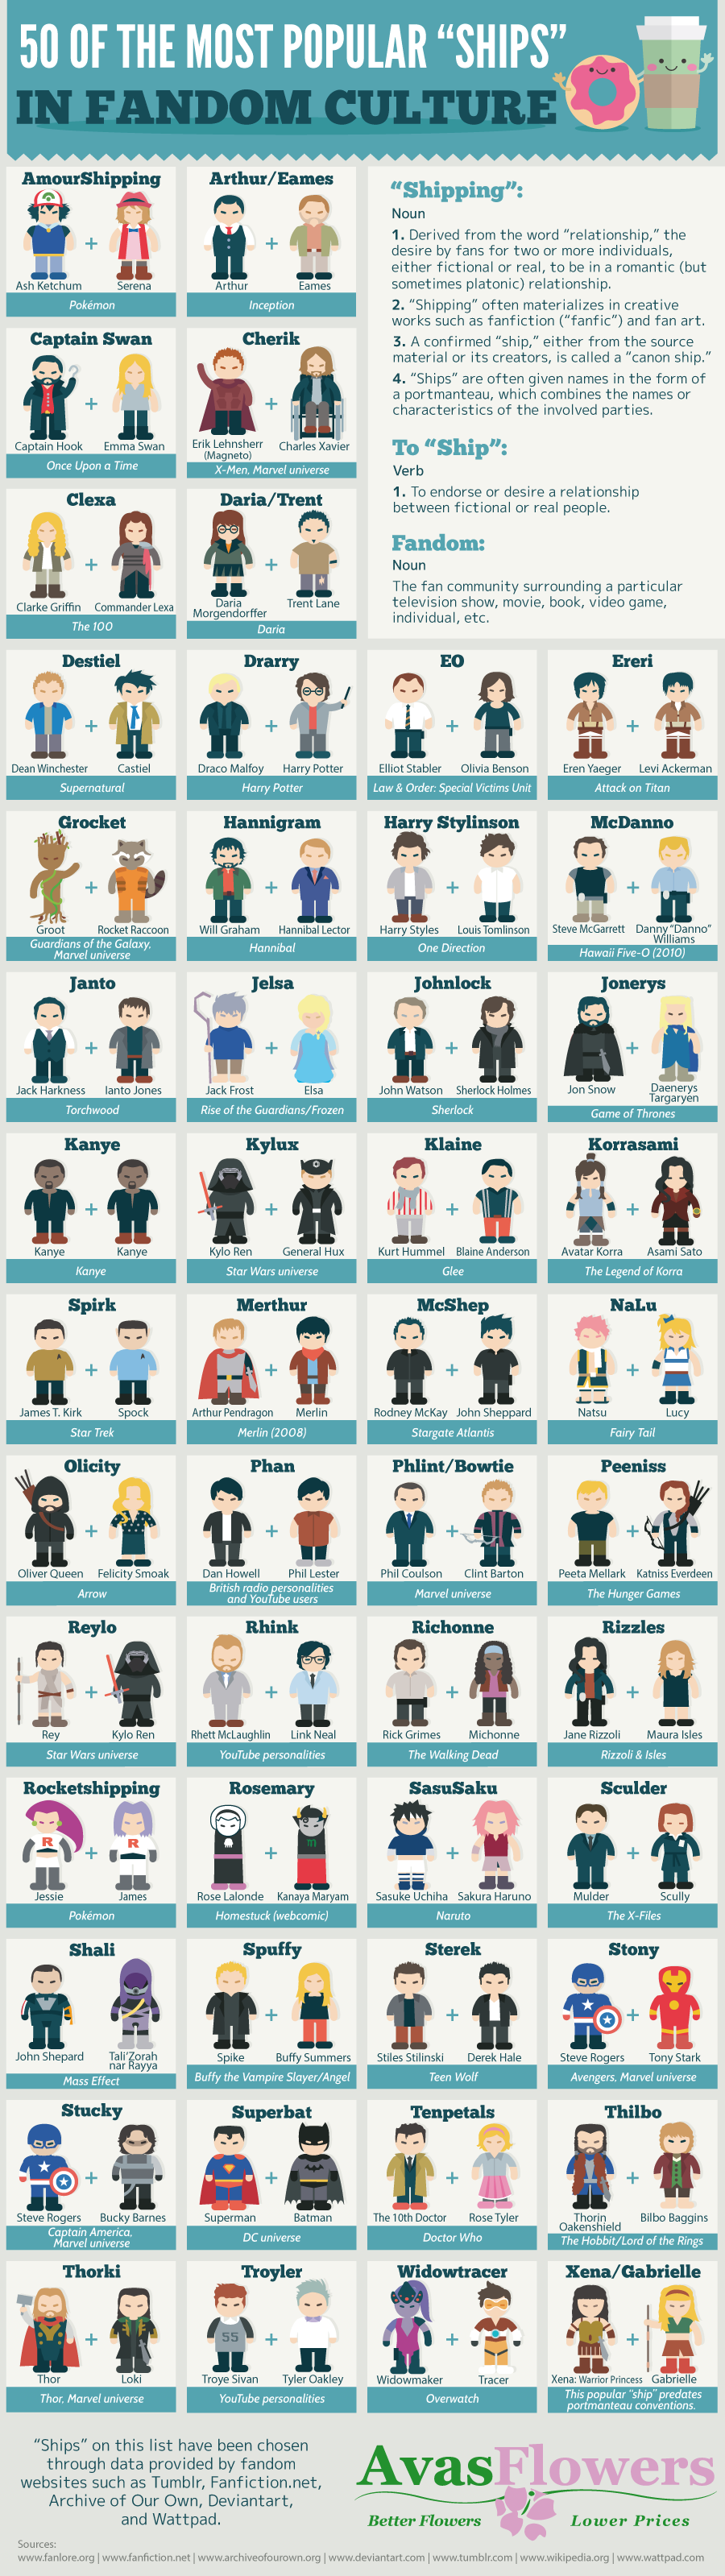 50 of the Most Popular 'Ships' in Fandom Culture - Avasflowers.net - Infographic